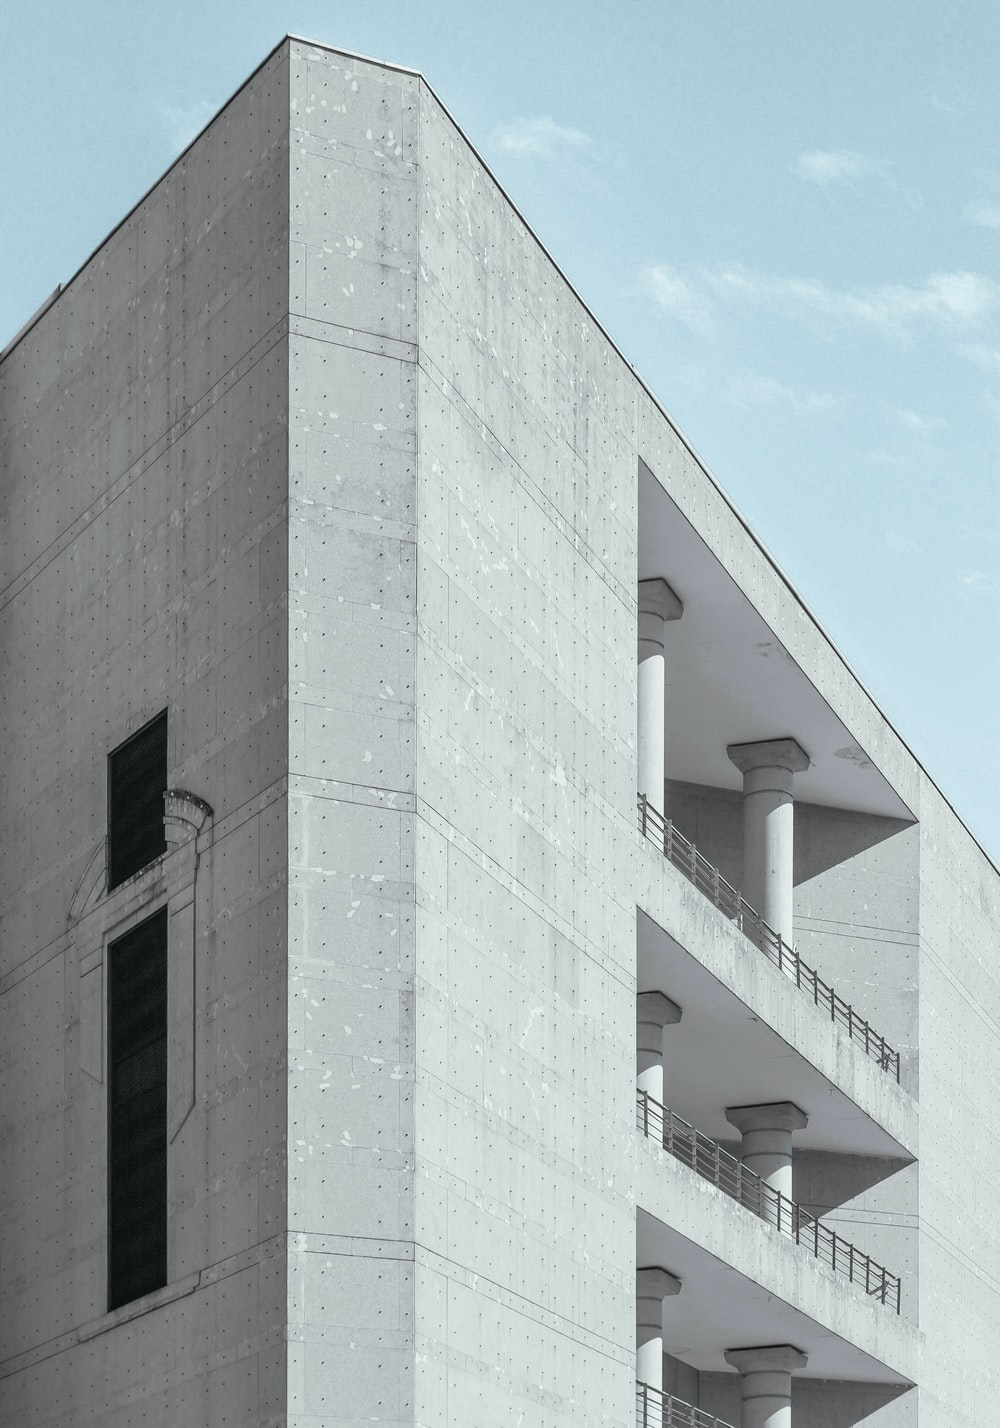 white concrete high rise building under cloudy sky